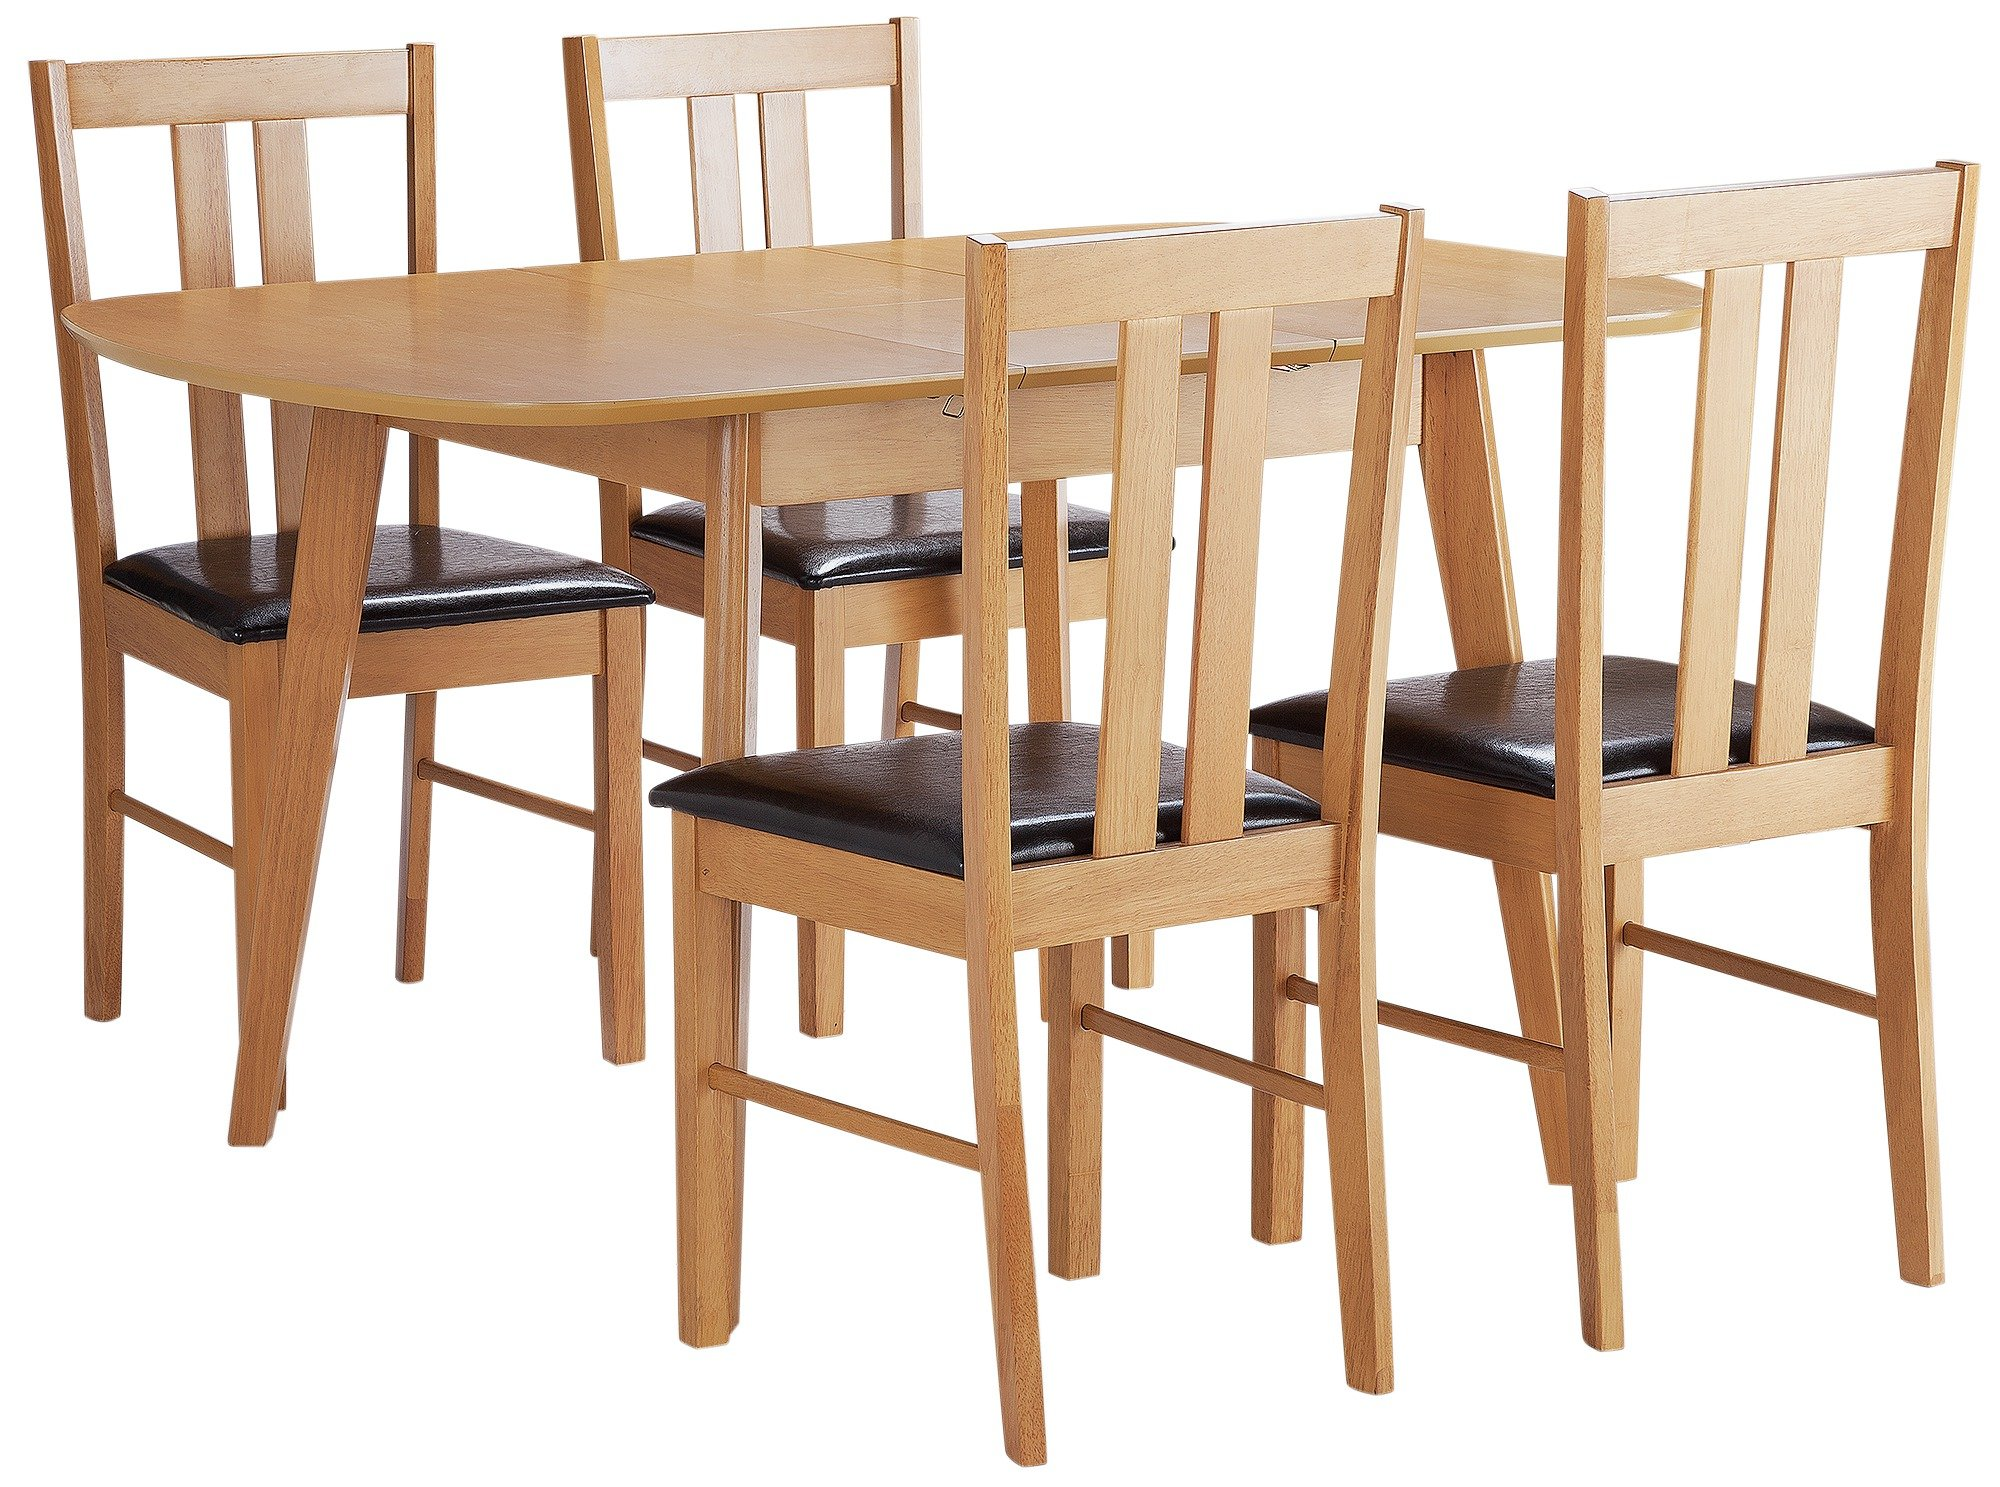 Argos Home Witley Extendable Wood Table & 4 Chairs